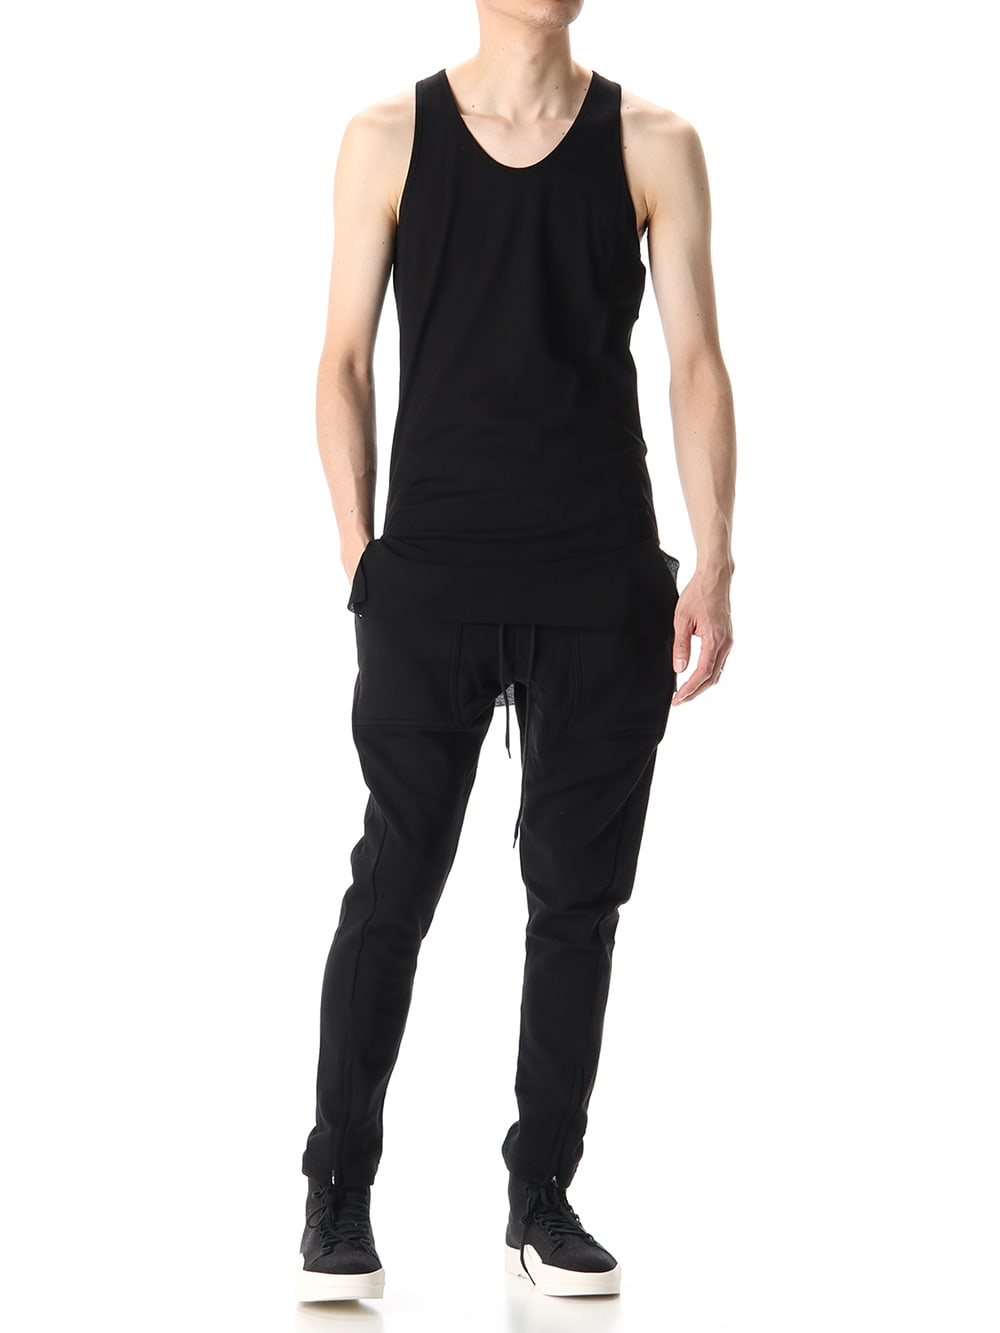 DIET BUTCHER SLIM SKIN 20SS Collection 3rd Delivery!! - 1-008